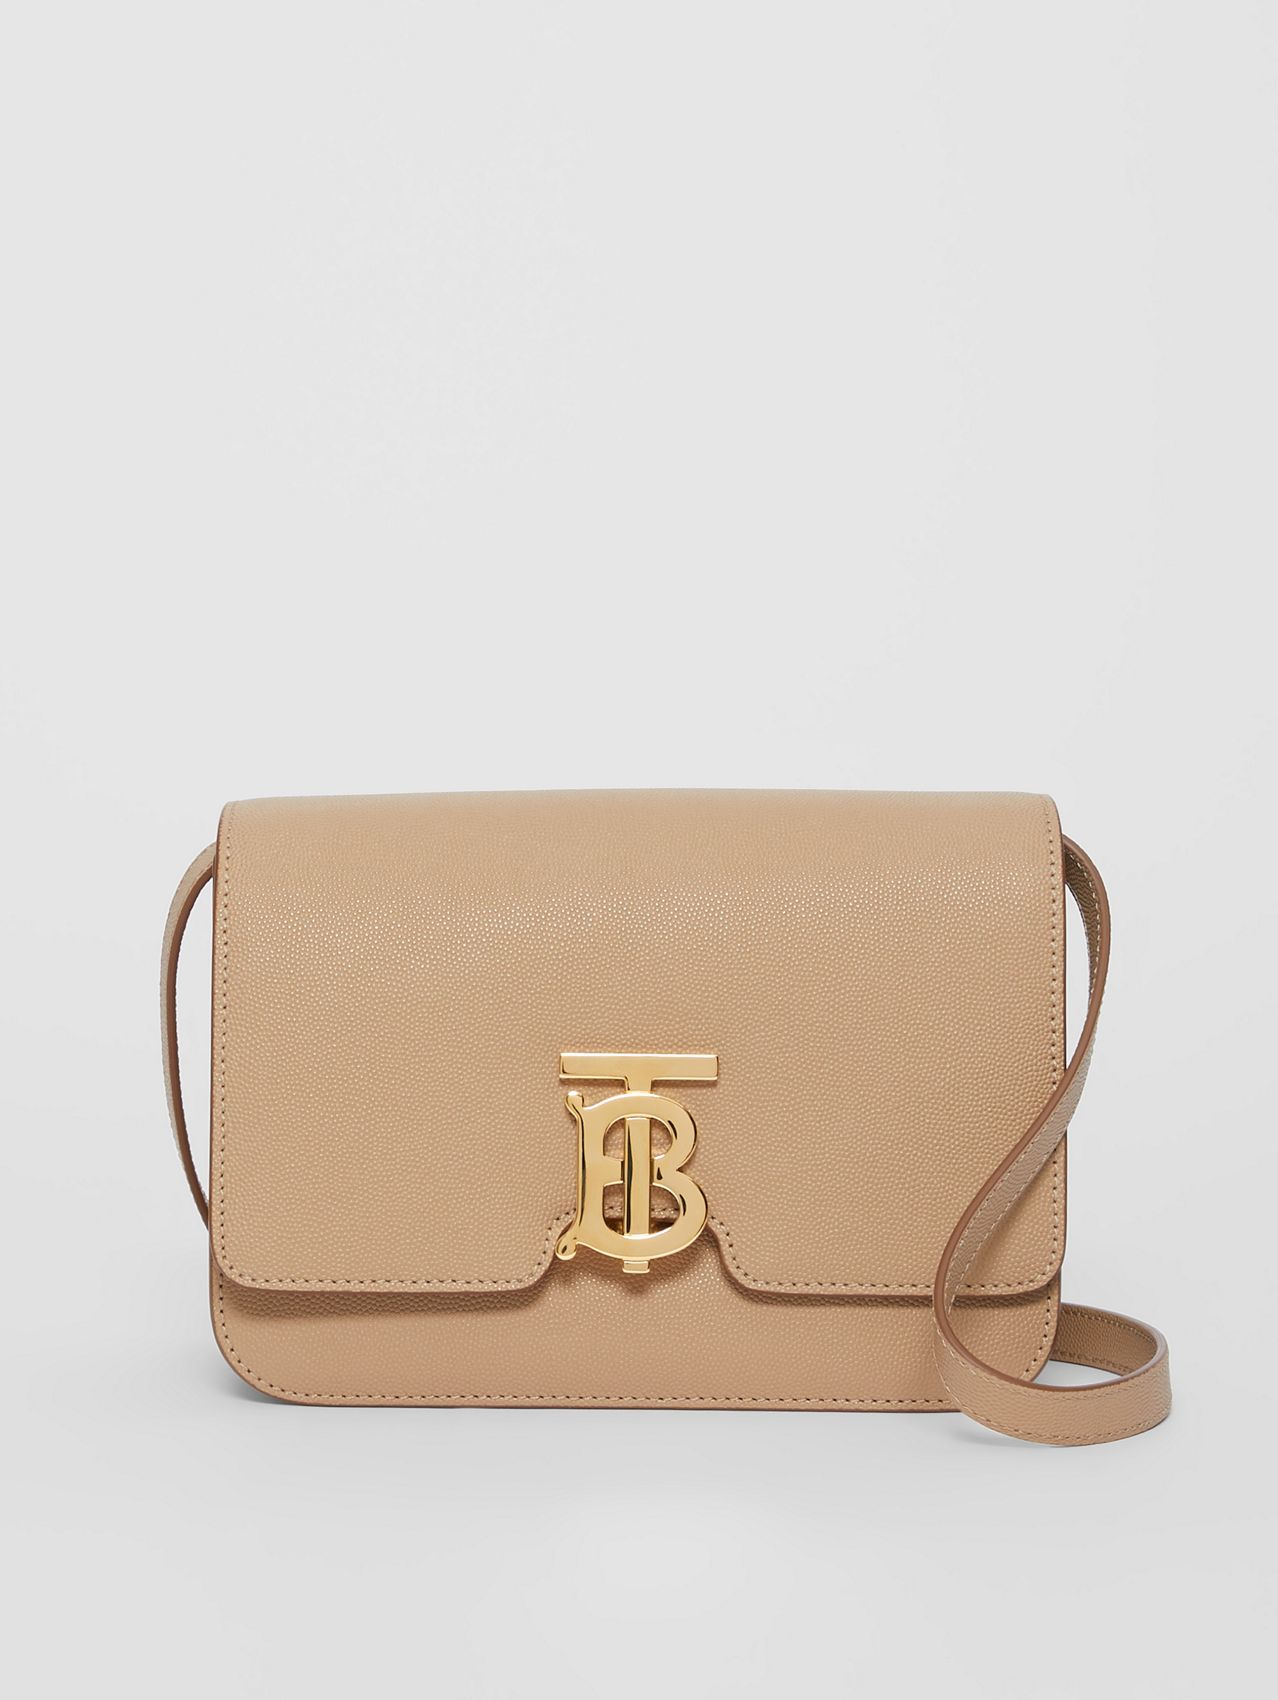 Small Grainy Leather TB Bag in Archive Beige